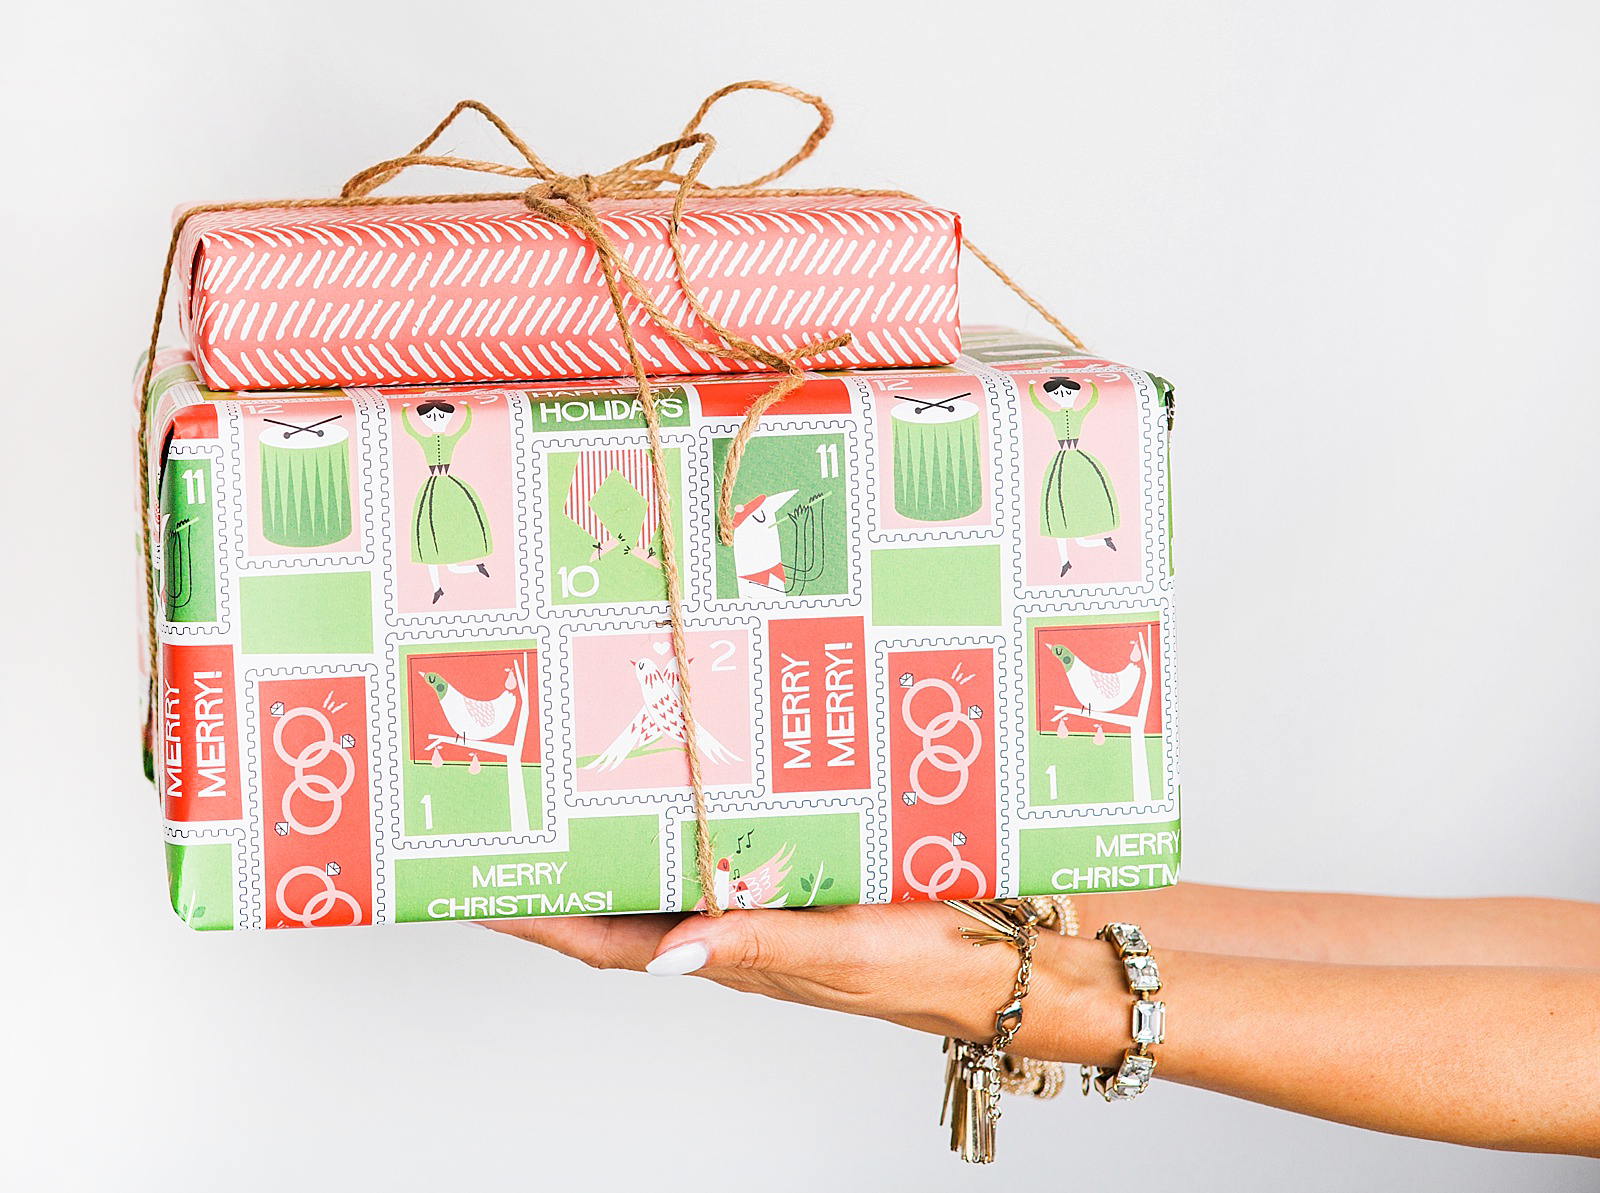 diana-elizabeth-blog-minted-custom-christmas-holiday-wrapping-paper-wurth-organizing-early-christmas-holiday-shopping-tips-2